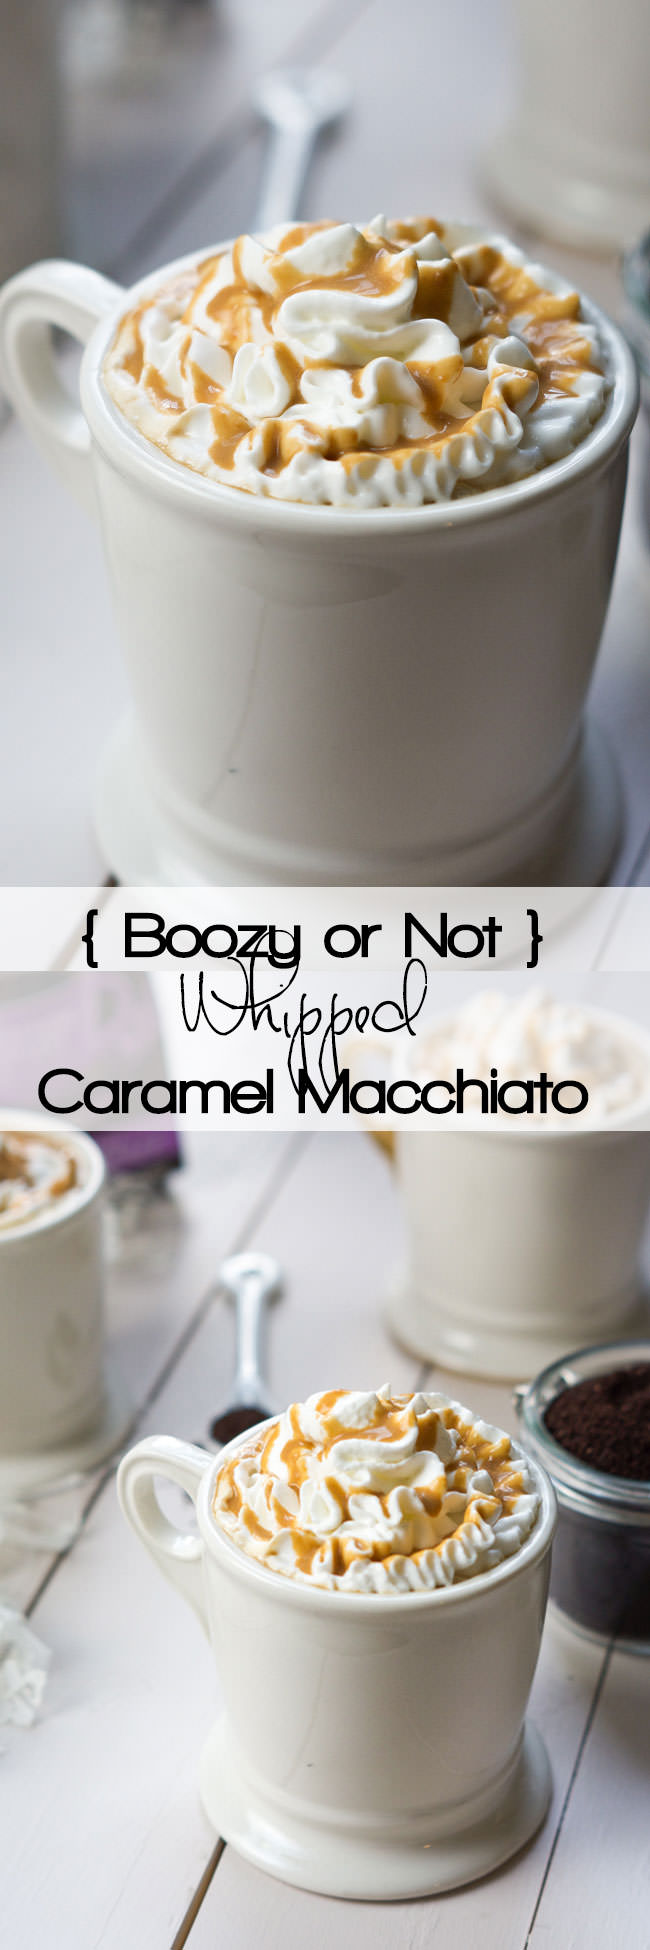 Whipped Caramel Macchiato is a combination of creamy vanilla milk, fresh coffee, topped with whipped cream and a drizzle of gooey caramel! Add a bit of Whipped Vodka for a boozy cafe latte or leave it out for a treat anyone can enjoy!